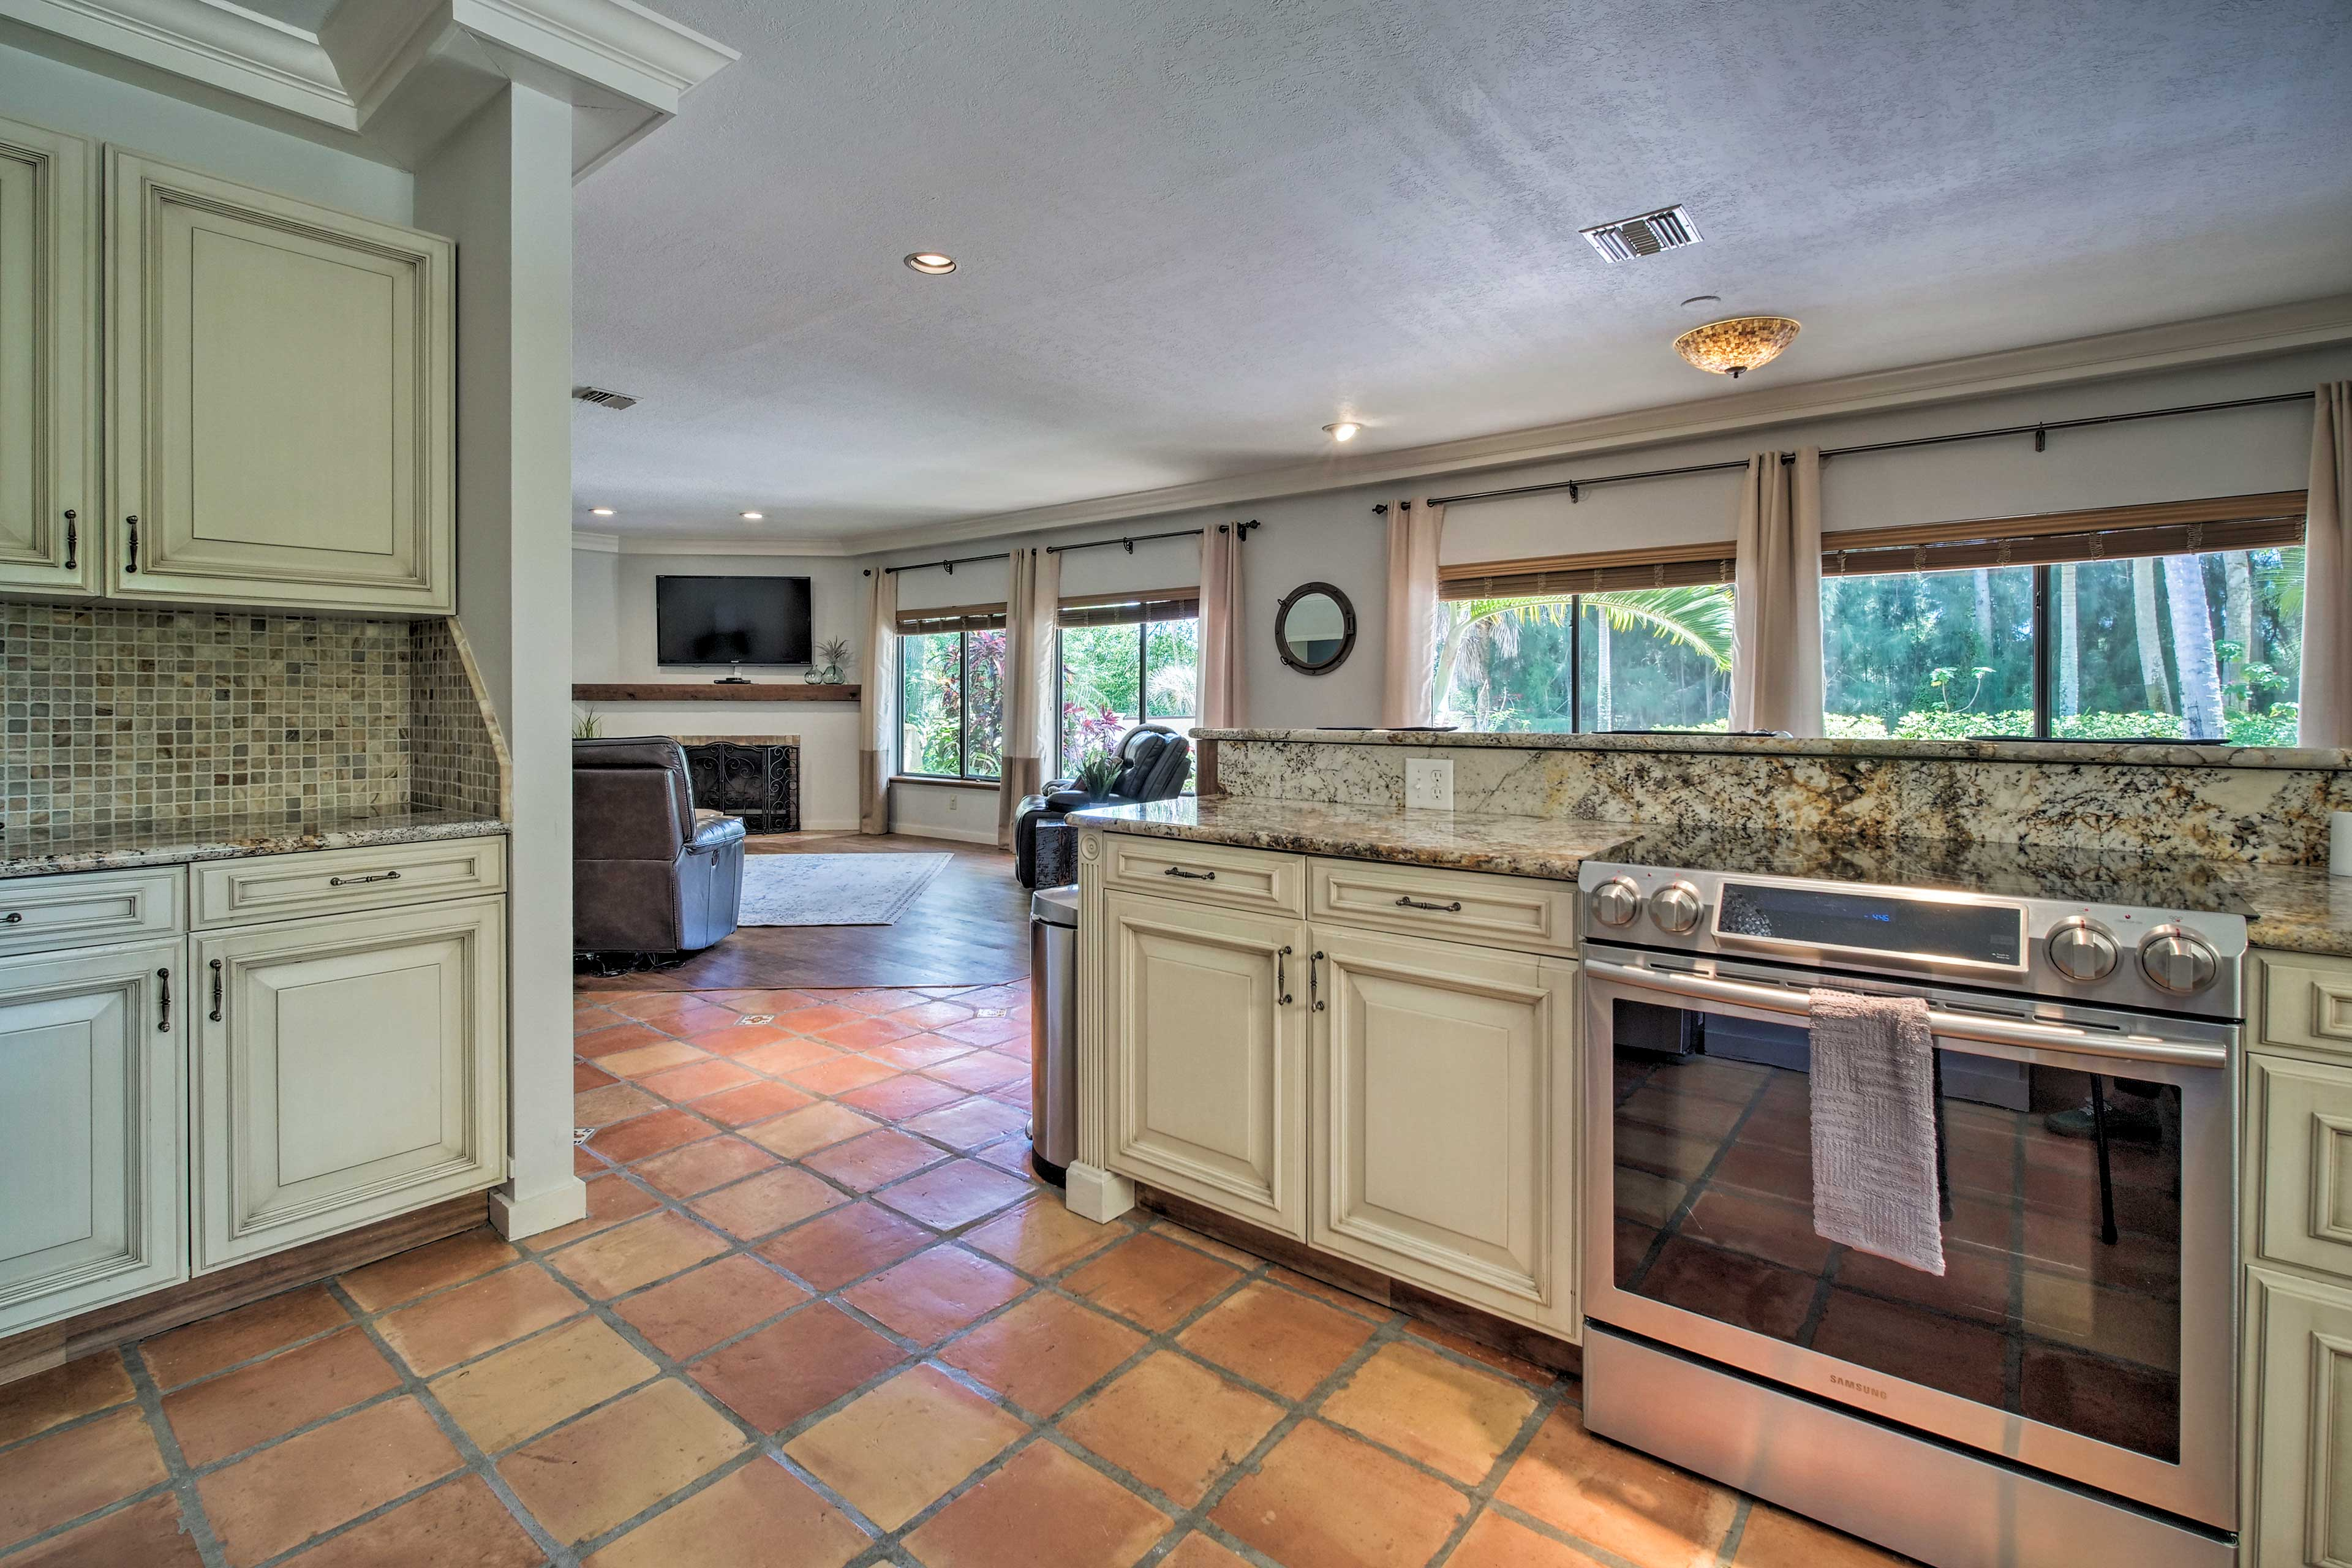 Plenty of counter space for your cooking needs!